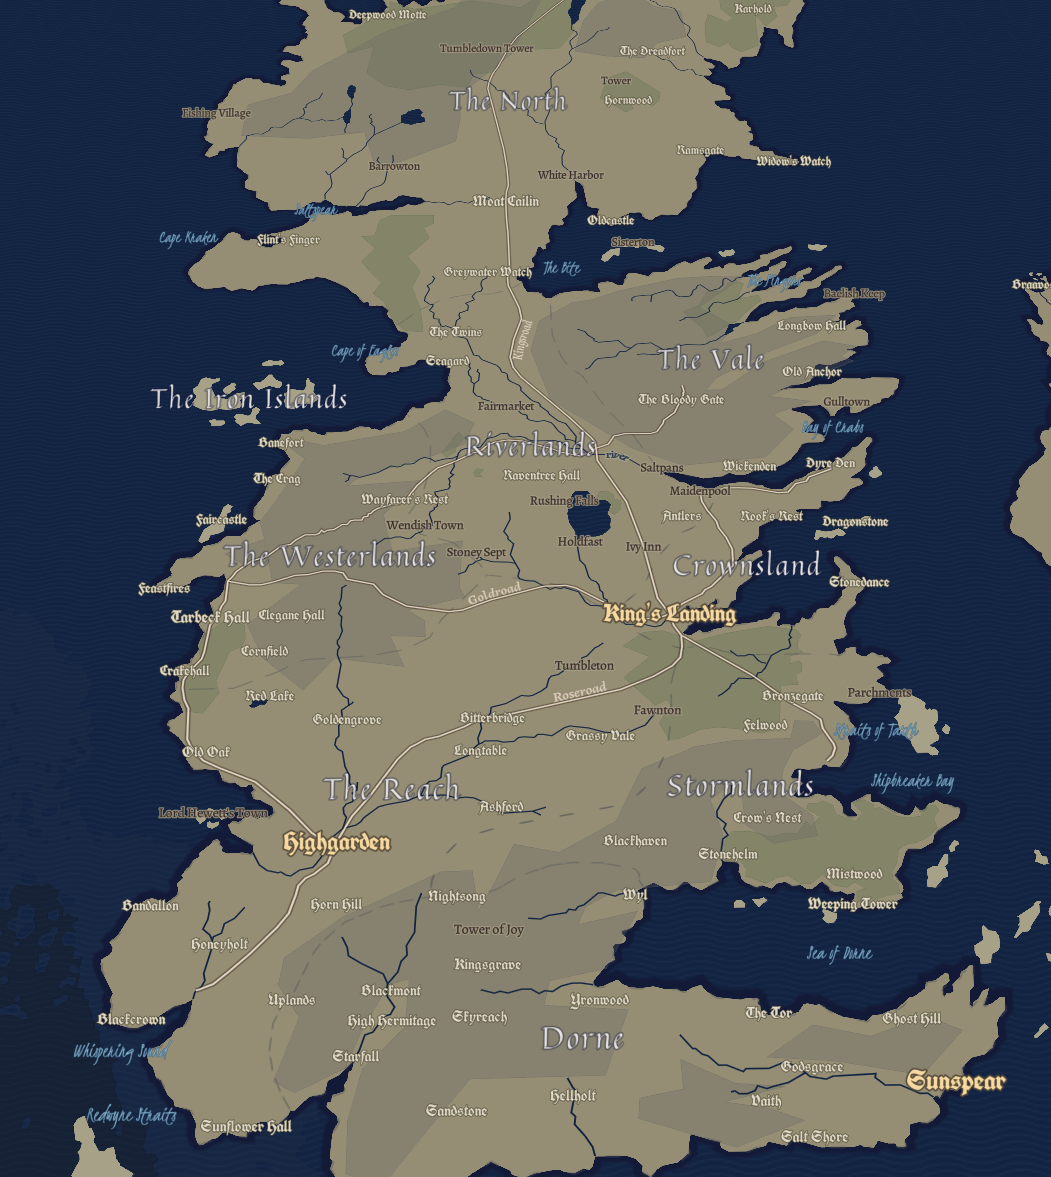 Design your own Game of Thrones-inspired map - Points of ... on walking dead map, winterfell map, a game of thrones, fire and blood, justified map, a clash of kings, narnia map, a storm of swords, gendry map, themes in a song of ice and fire, got map, jericho map, the prince of winterfell, downton abbey map, lord snow, the kingsroad, works based on a song of ice and fire, dallas map, a game of thrones: genesis, clash of kings map, sons of anarchy, camelot map, qarth map, world map, bloodline map, a storm of swords map, tales of dunk and egg, game of thrones - season 2, a golden crown, star trek map, spooksville map, guild wars 2 map, game of thrones - season 1, a game of thrones collectible card game, jersey shore map, the pointy end, valyria map, winter is coming,